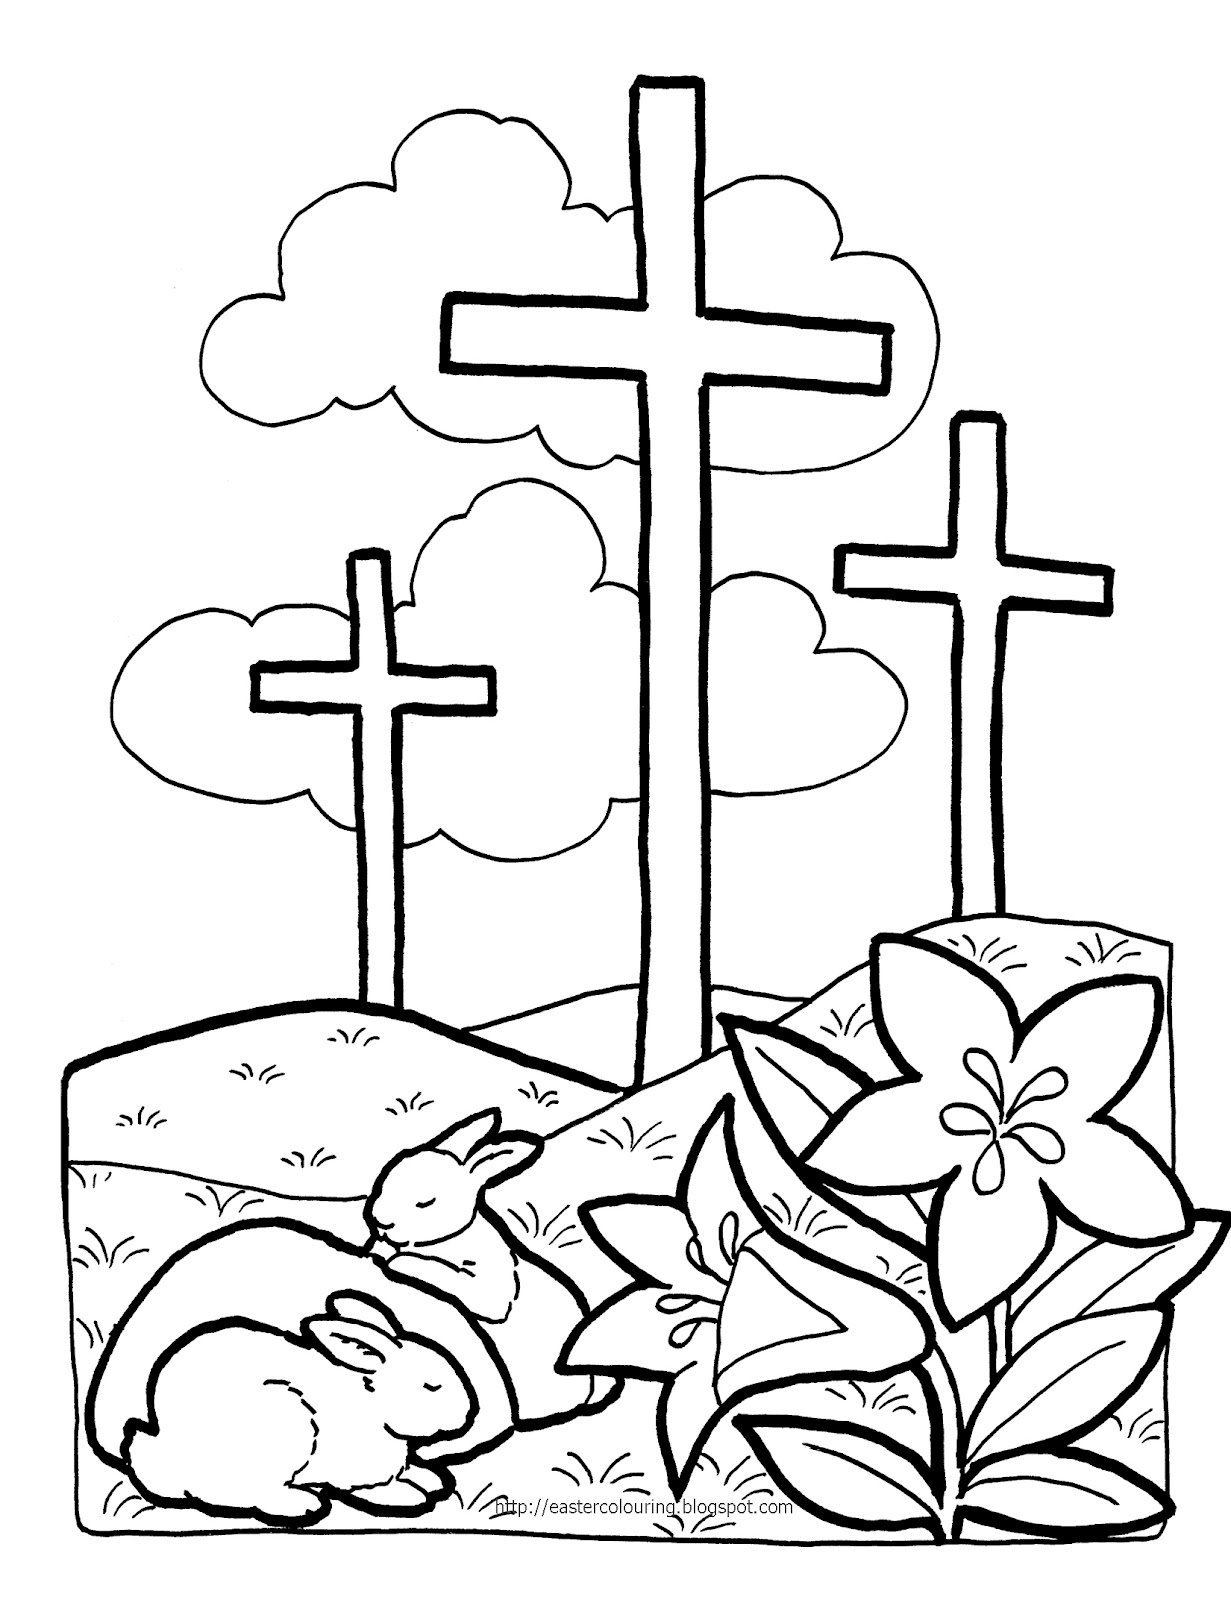 resurrection coloring pages my draw drawingedblogspotcom resurrection coloring pages resurrection coloring